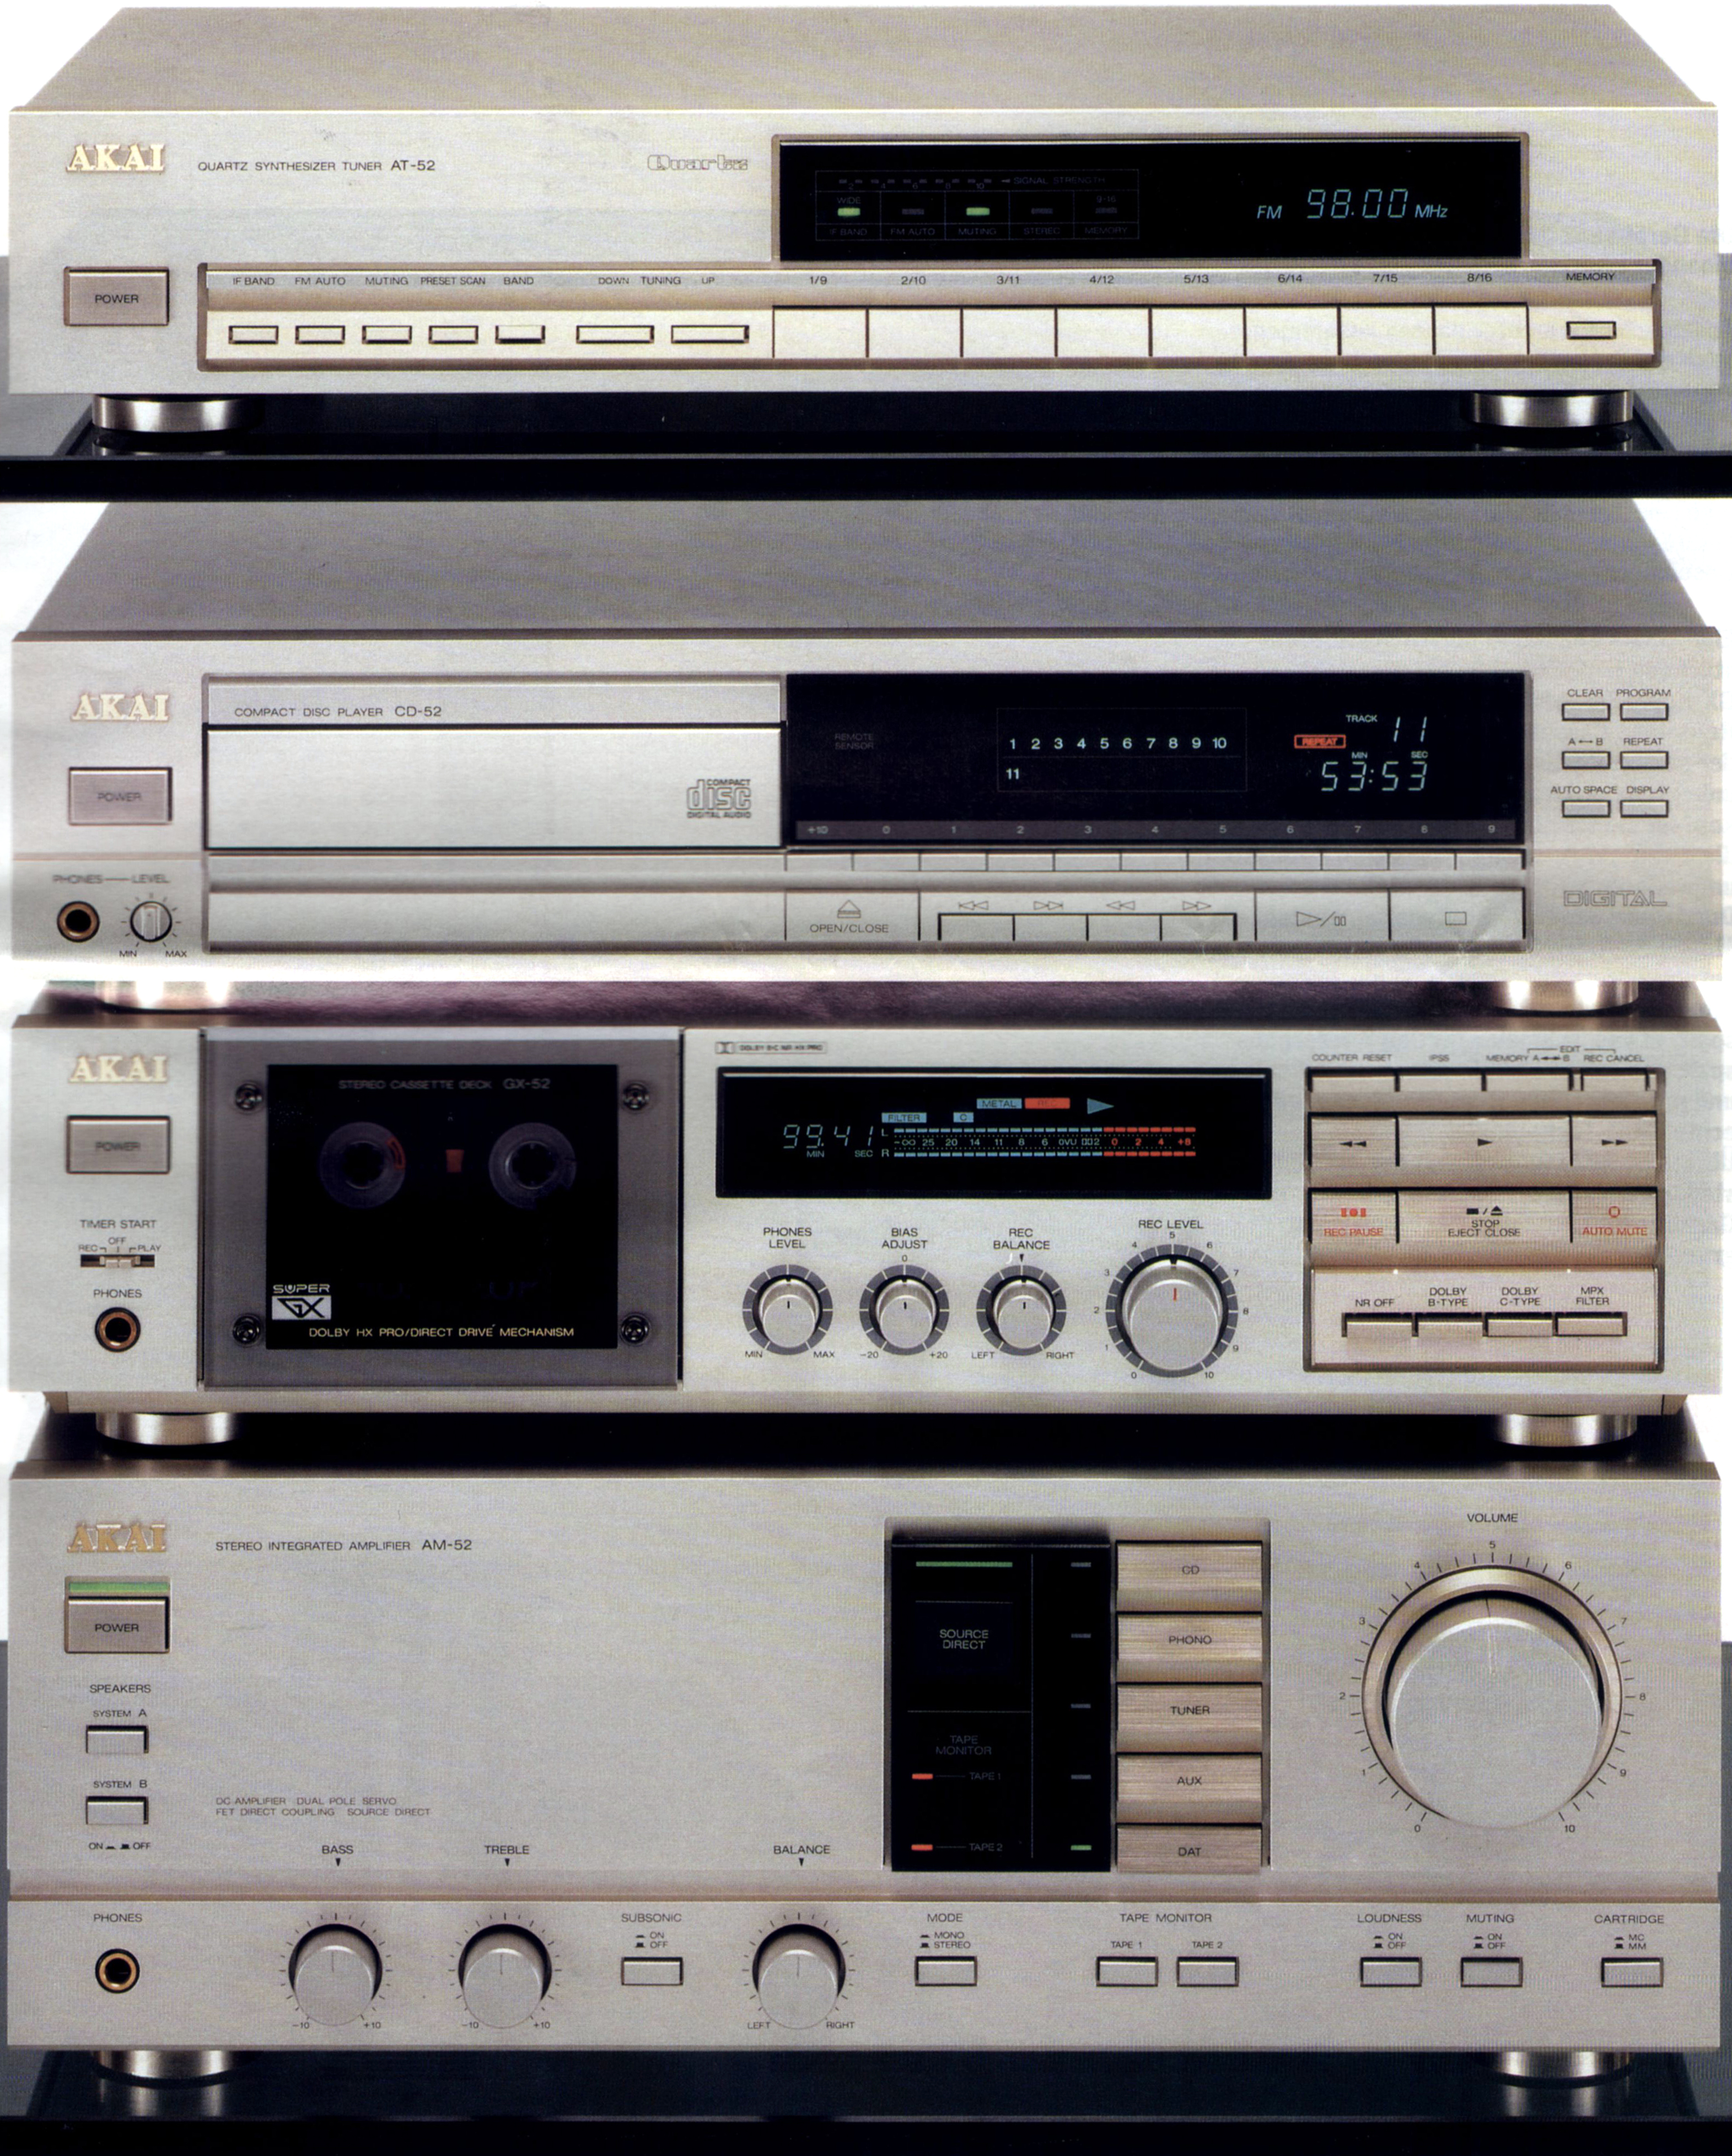 Akai AM-AT-CD-GX-52-Prospekt-1989.jpg